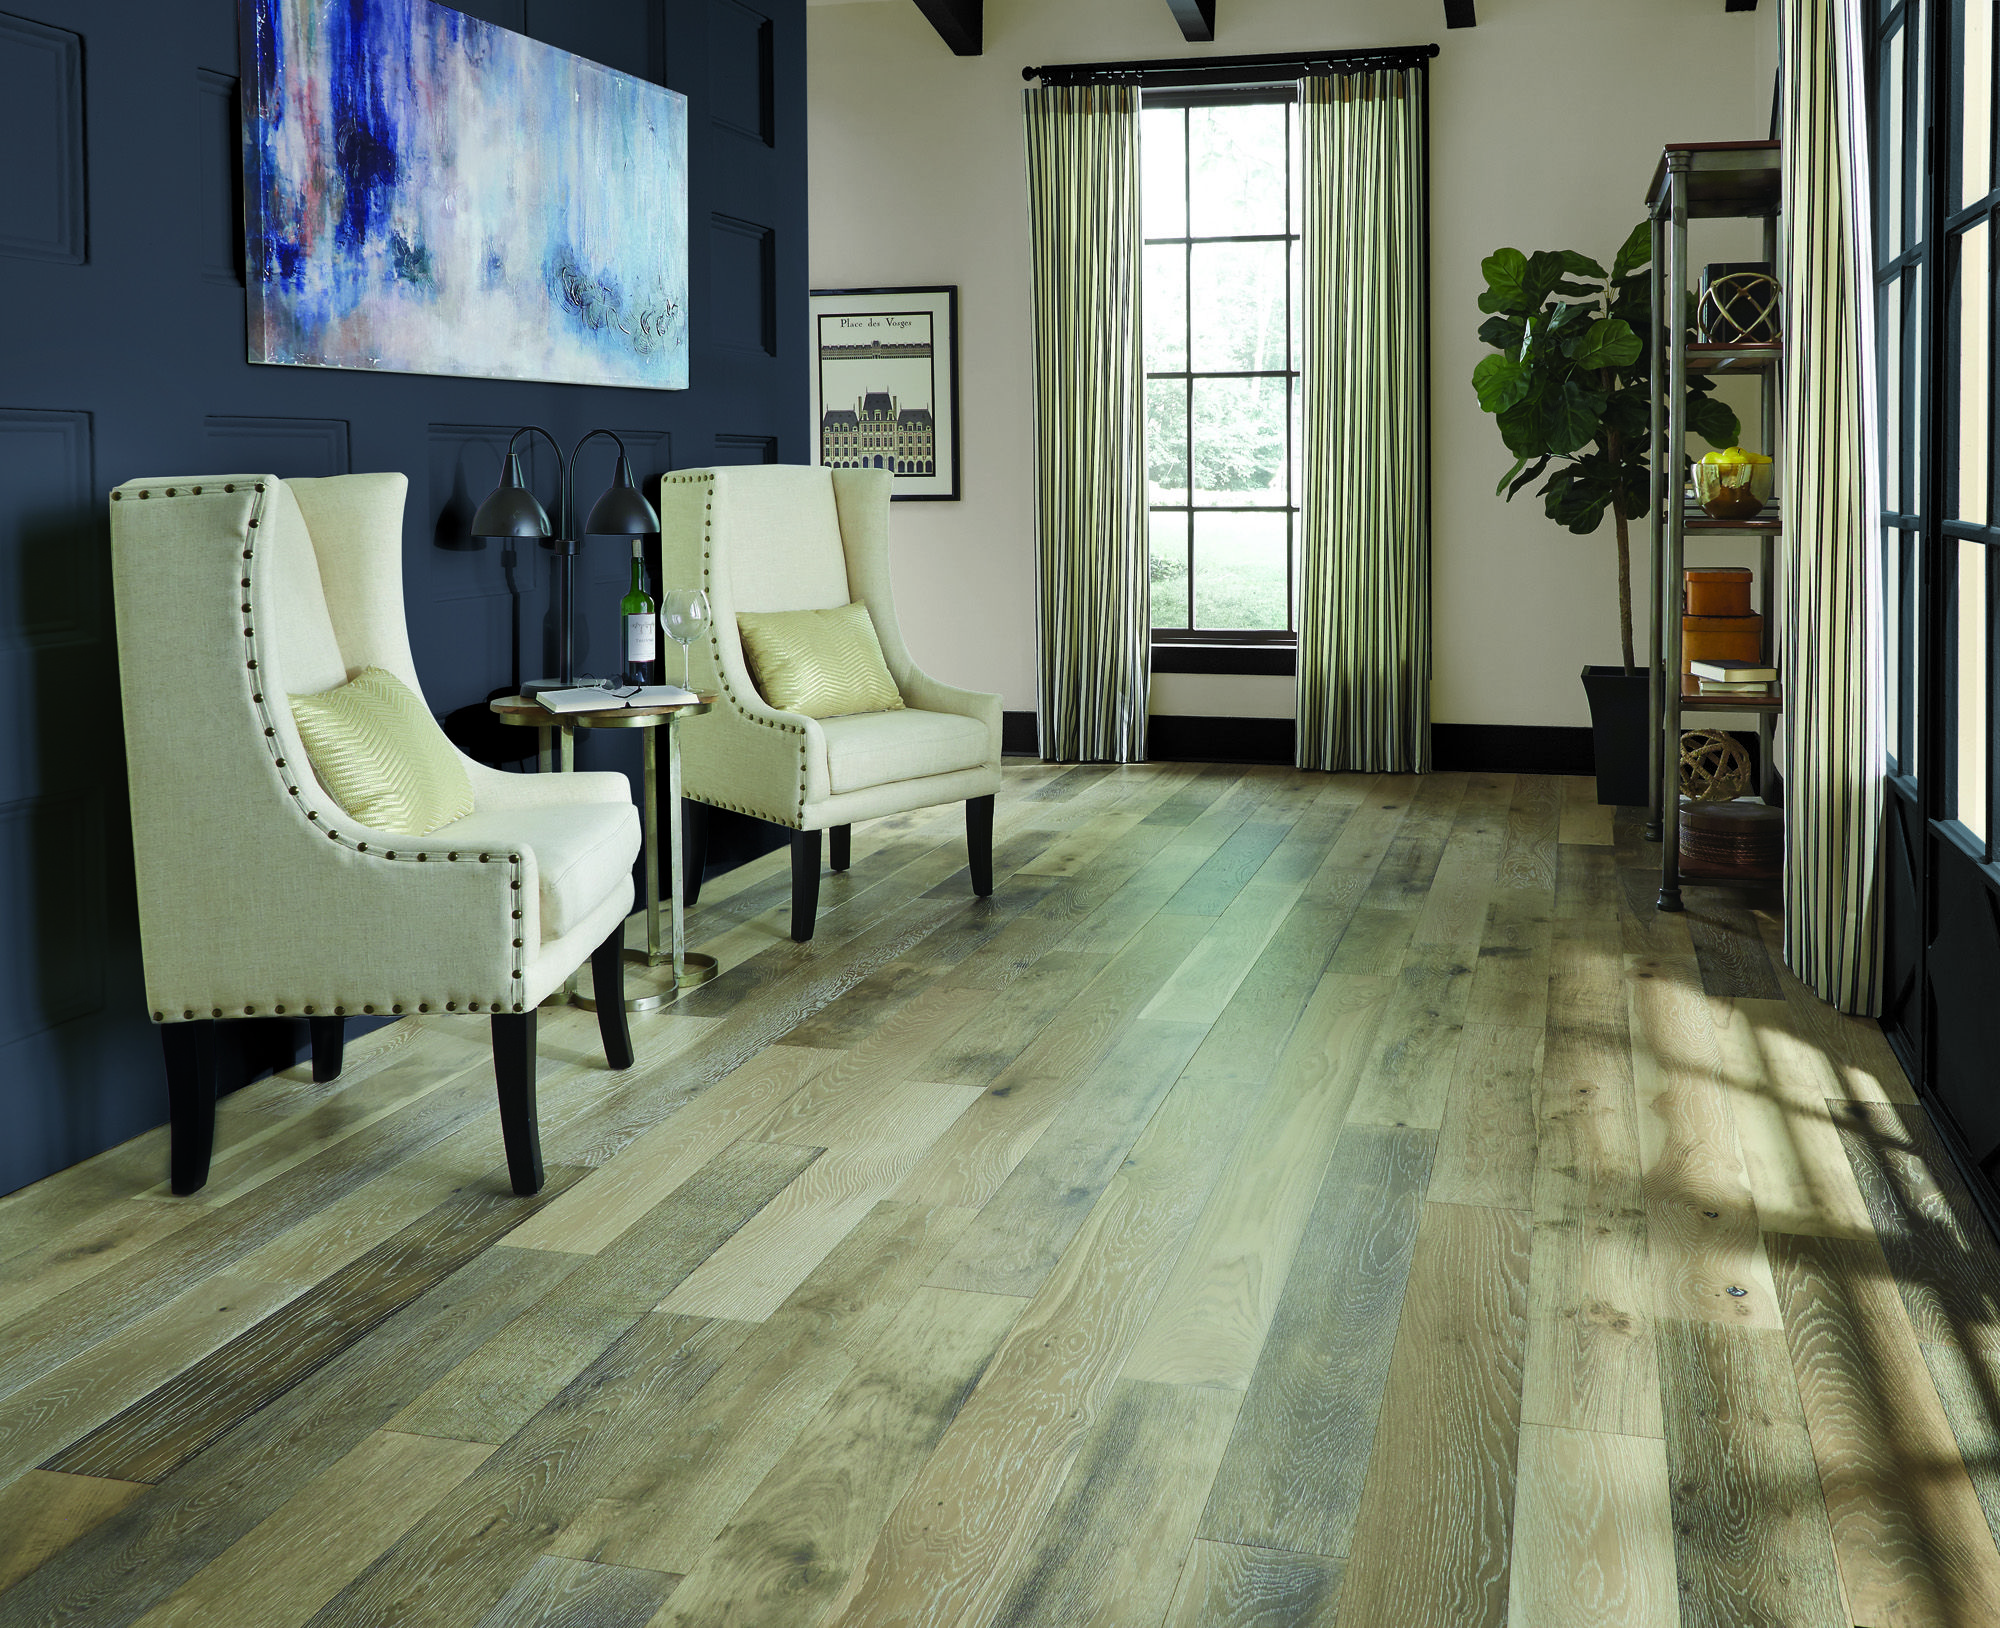 Wide Plank European Styled Vintage French Oak Hardwood Showcases And Elegant Mix Of Beige And Gr European White Oak Floors White Oak Floors French Oak Flooring